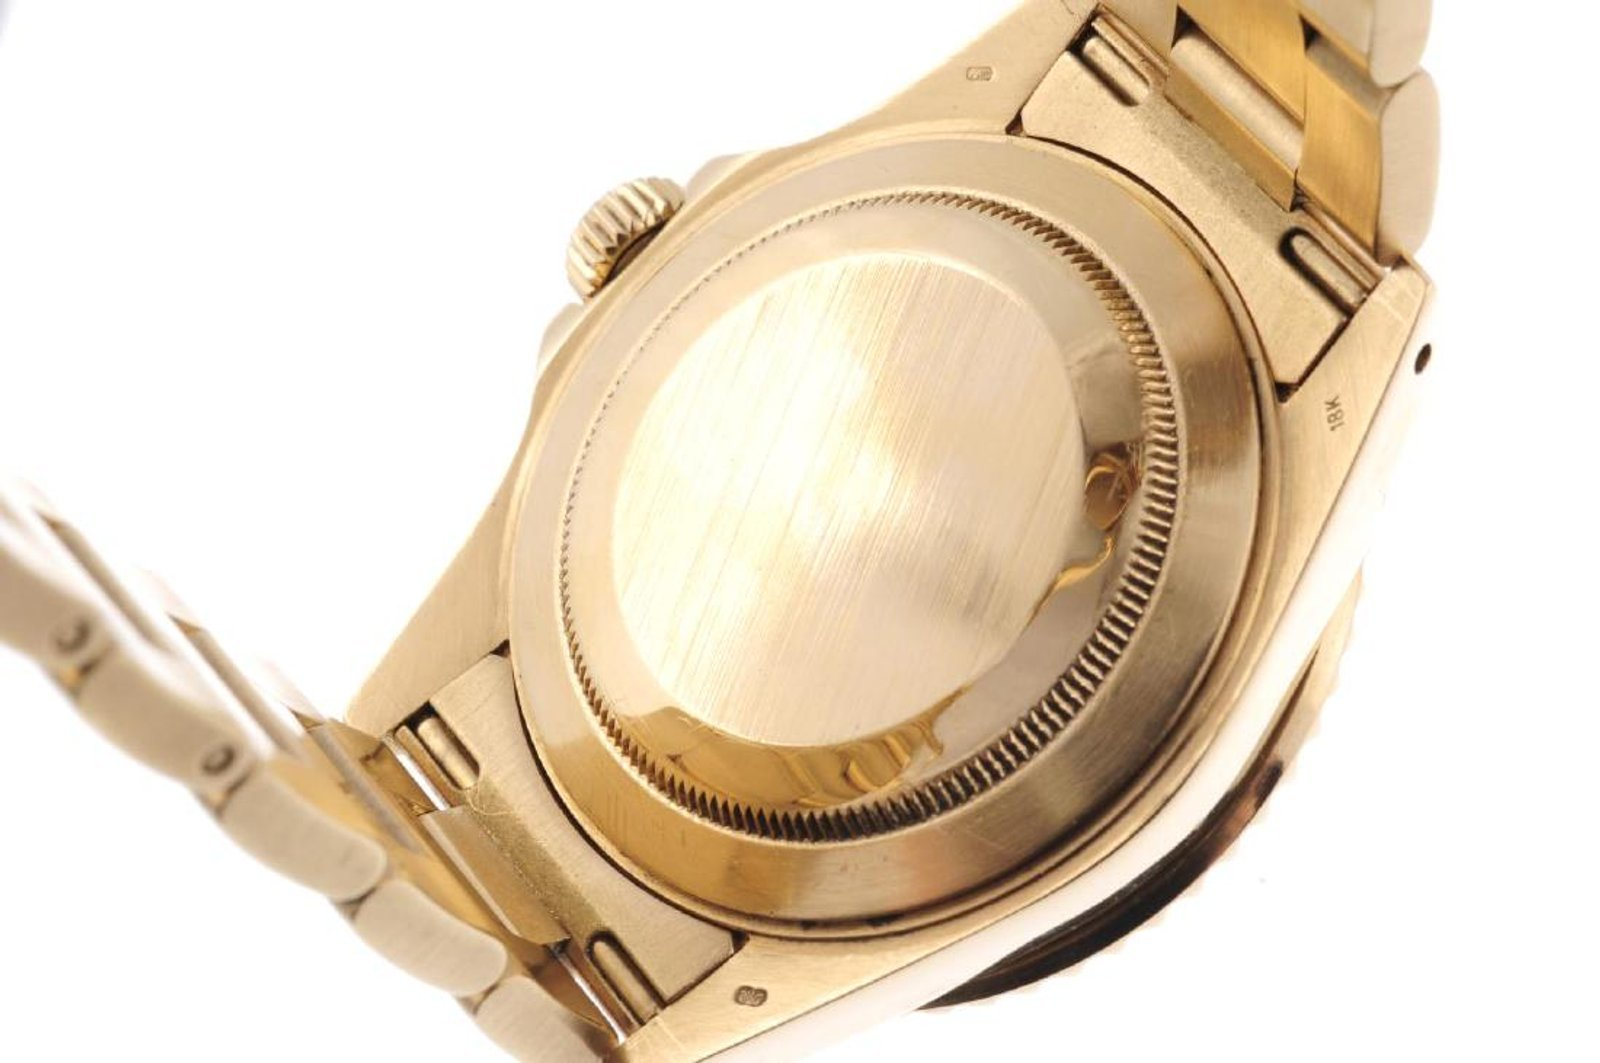 En Rolex Submariner Oyster Perpetual, 18ct guld